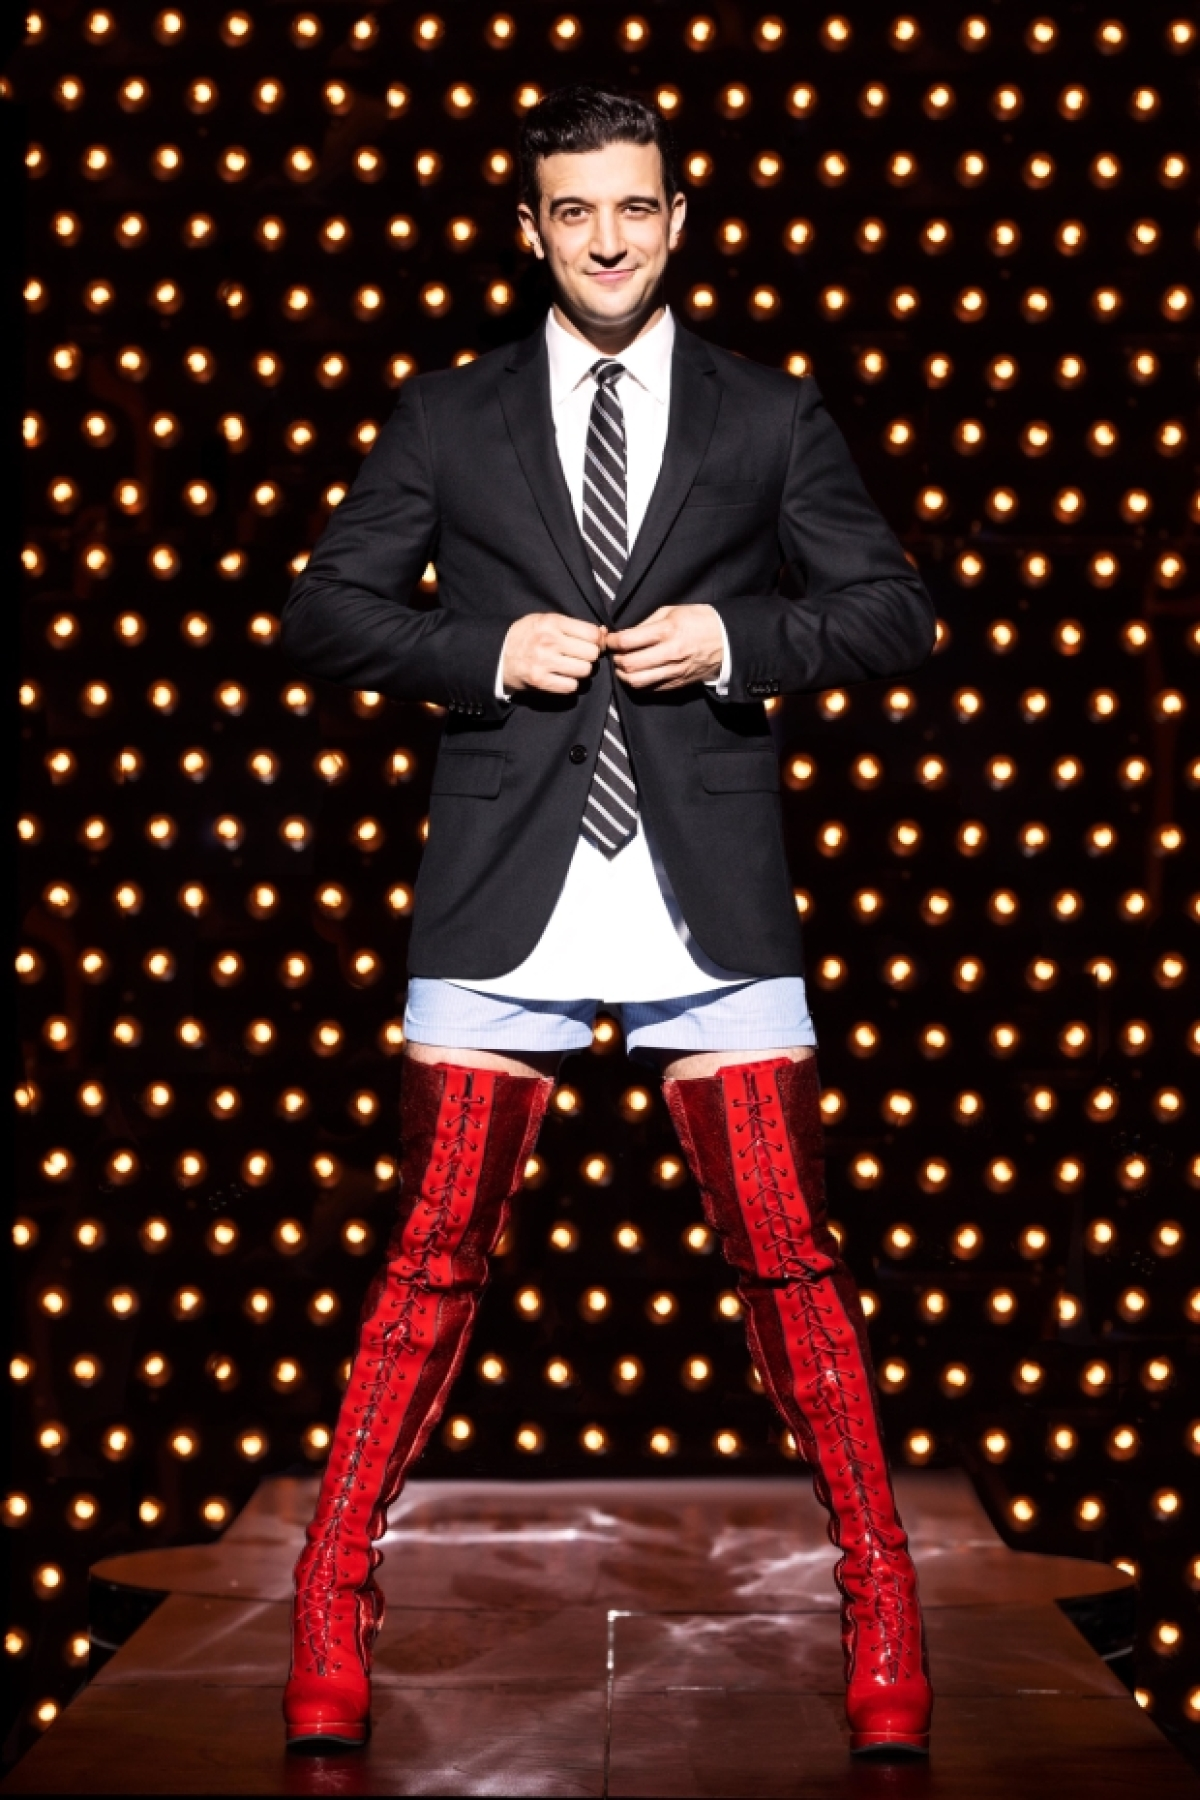 5 Questions With Kinky Boots Star Mark Ballas TheaterMania